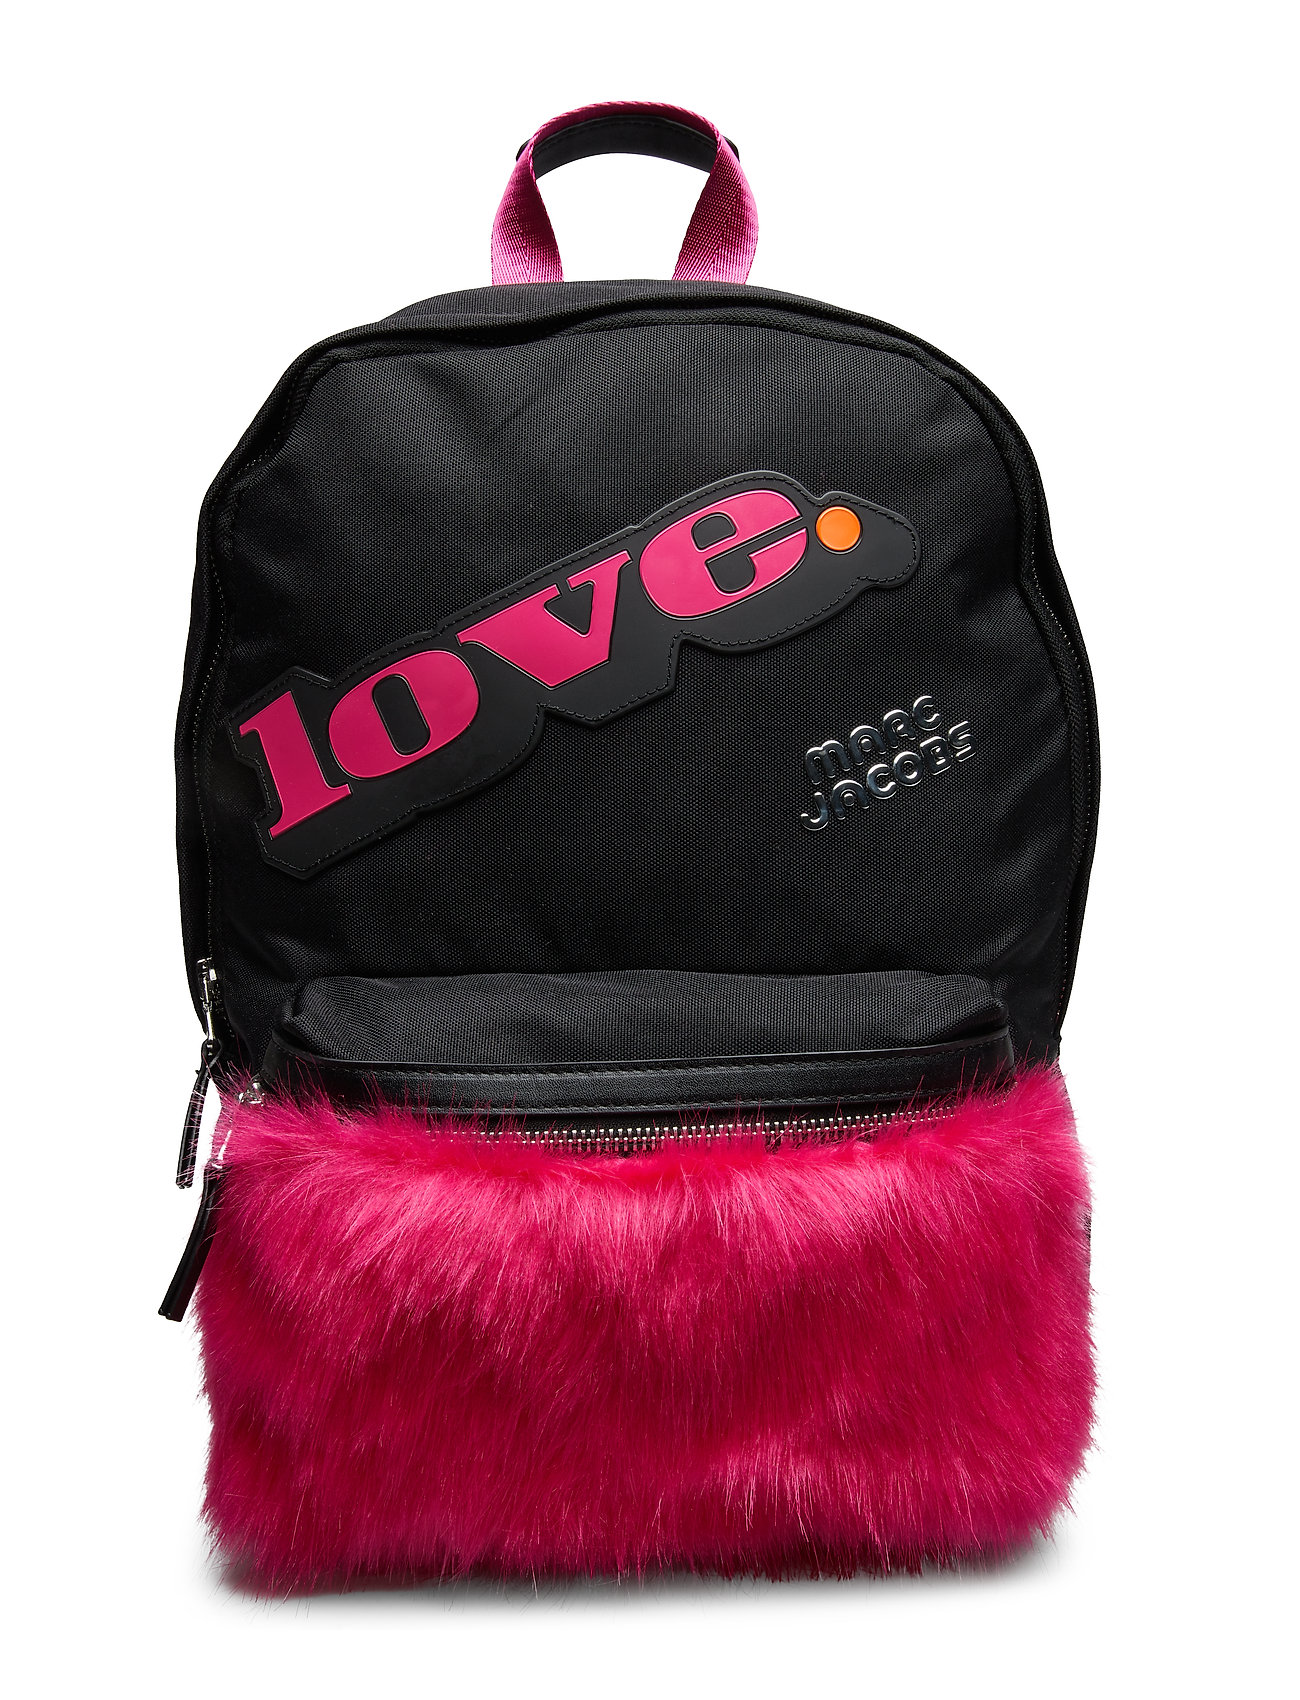 Little Marc Jacobs RUCKSACK - BLACK  PINK